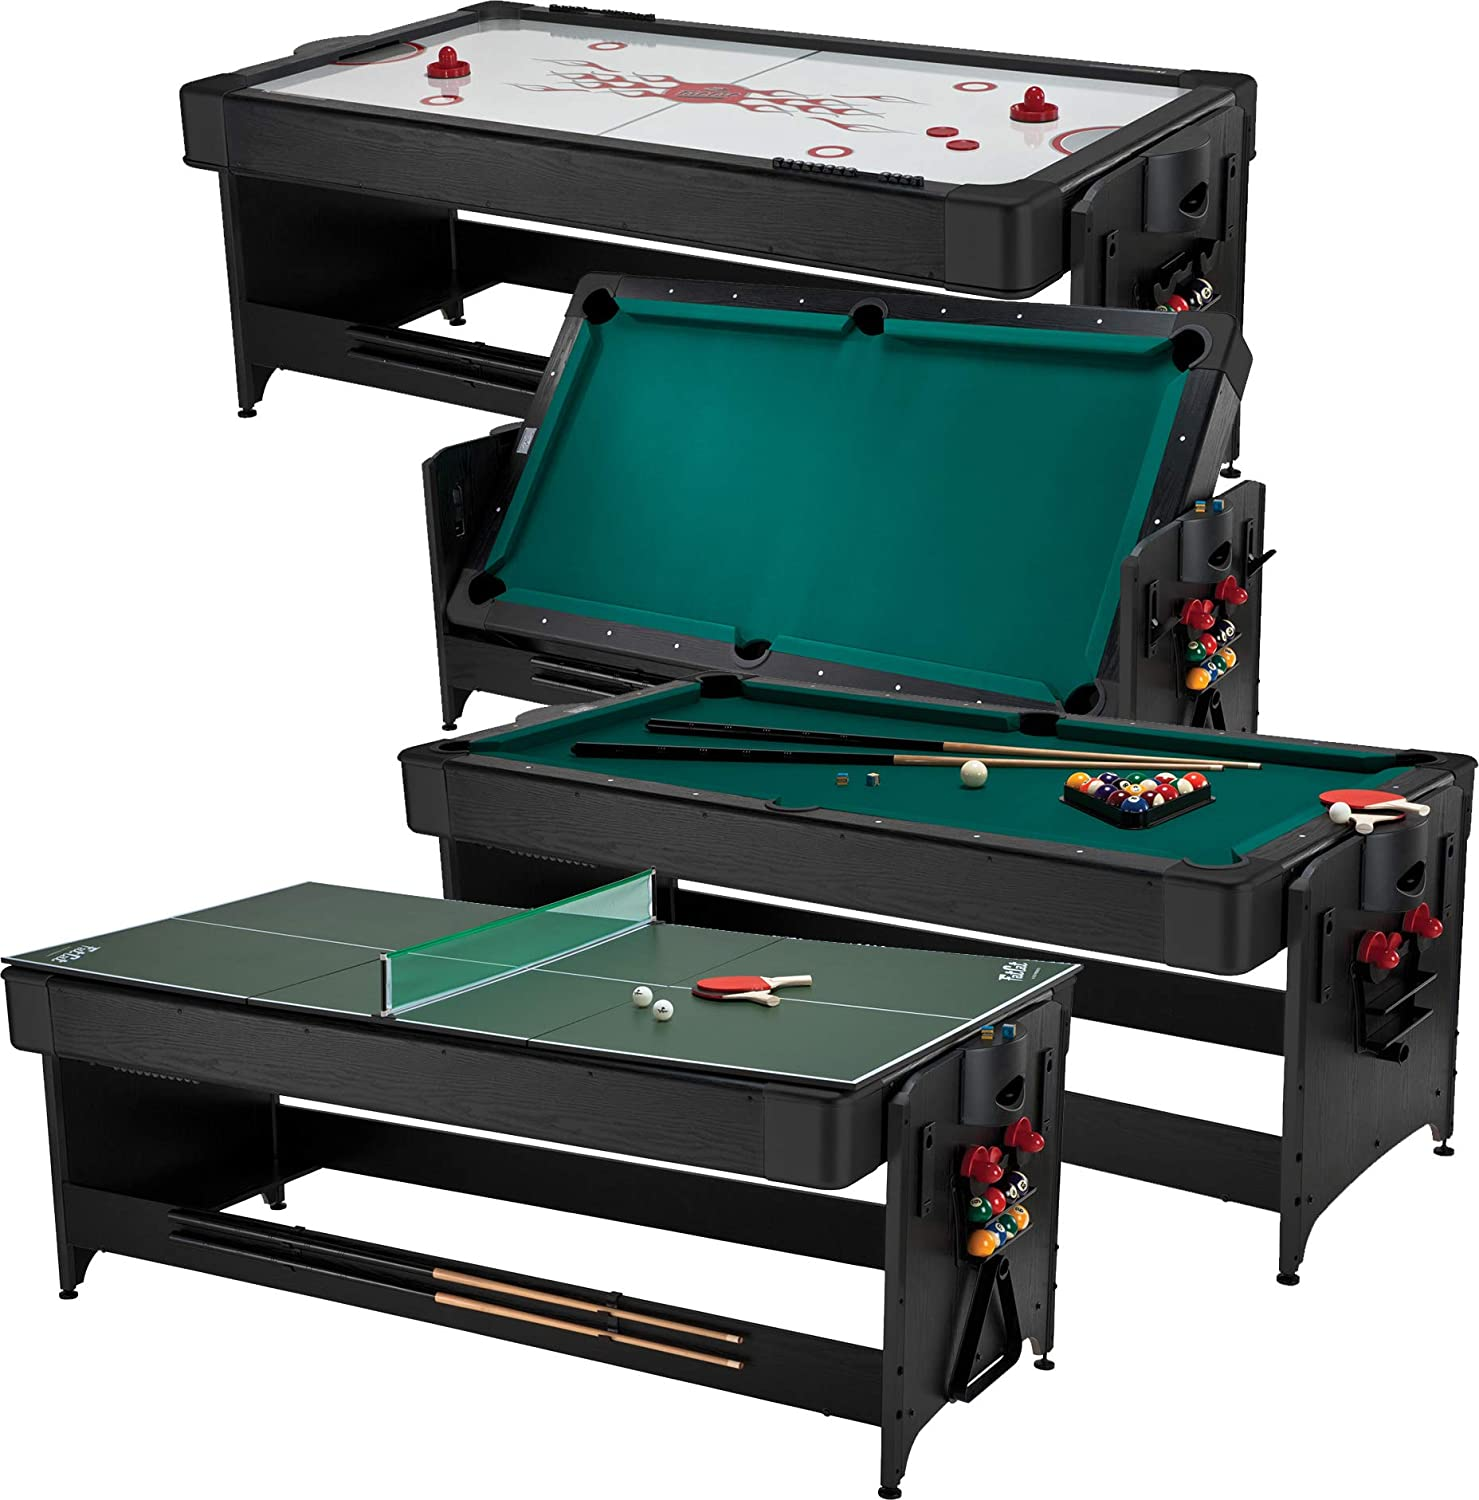 Fat Cat Original 3-in-1 Green 7' Pockey Multi-Game Table - Air Hockey, Billiards and Table Tennis - Green : Tabletop Billiards Games : Sports & Outdoors